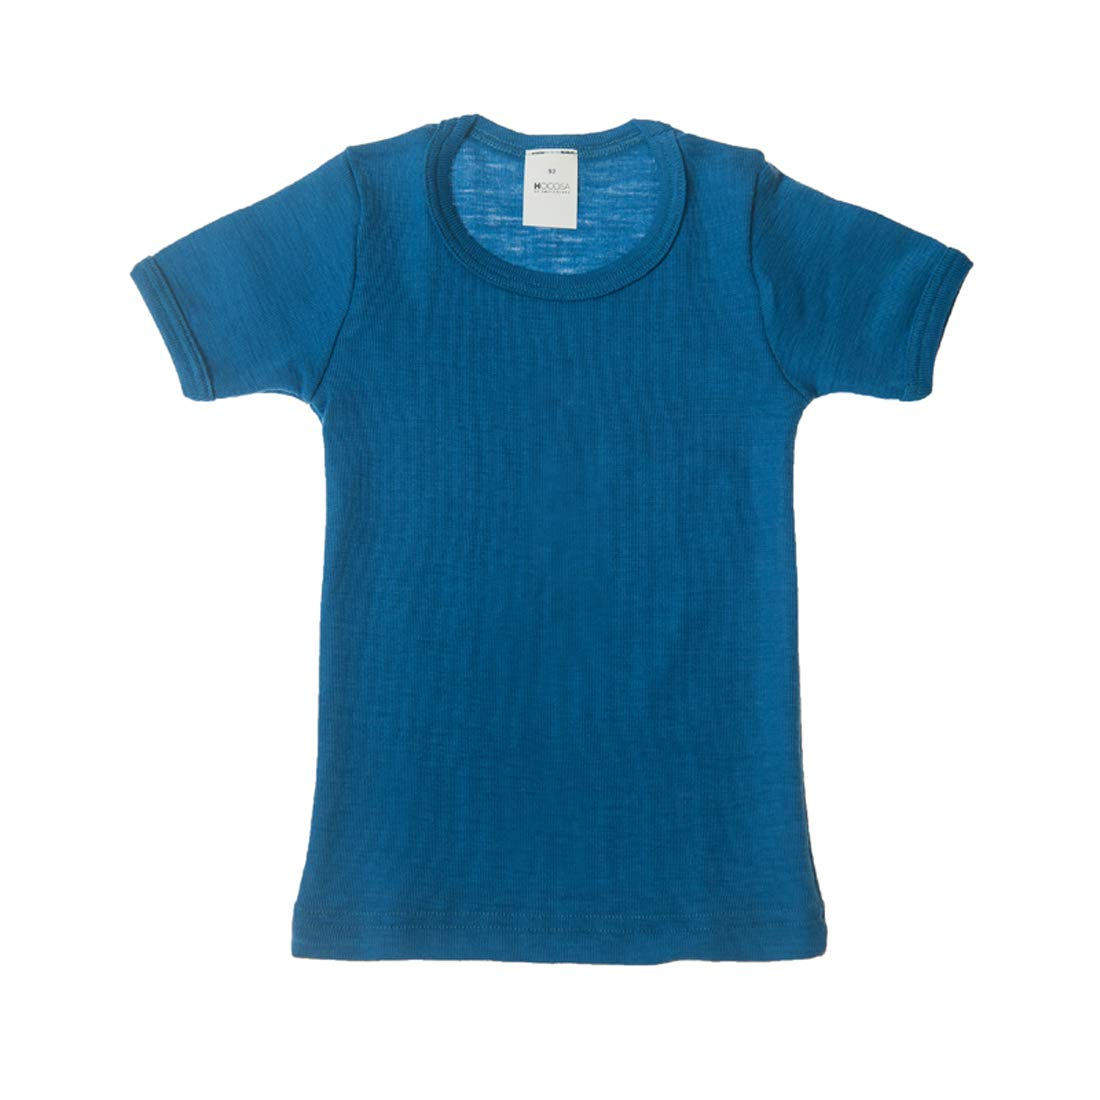 Hocosa of Switzerland Little Kids Organic Wool Short-Sleeved Undershirt, Solid Blue, s.92/2 yr by Hocosa of Switzerland